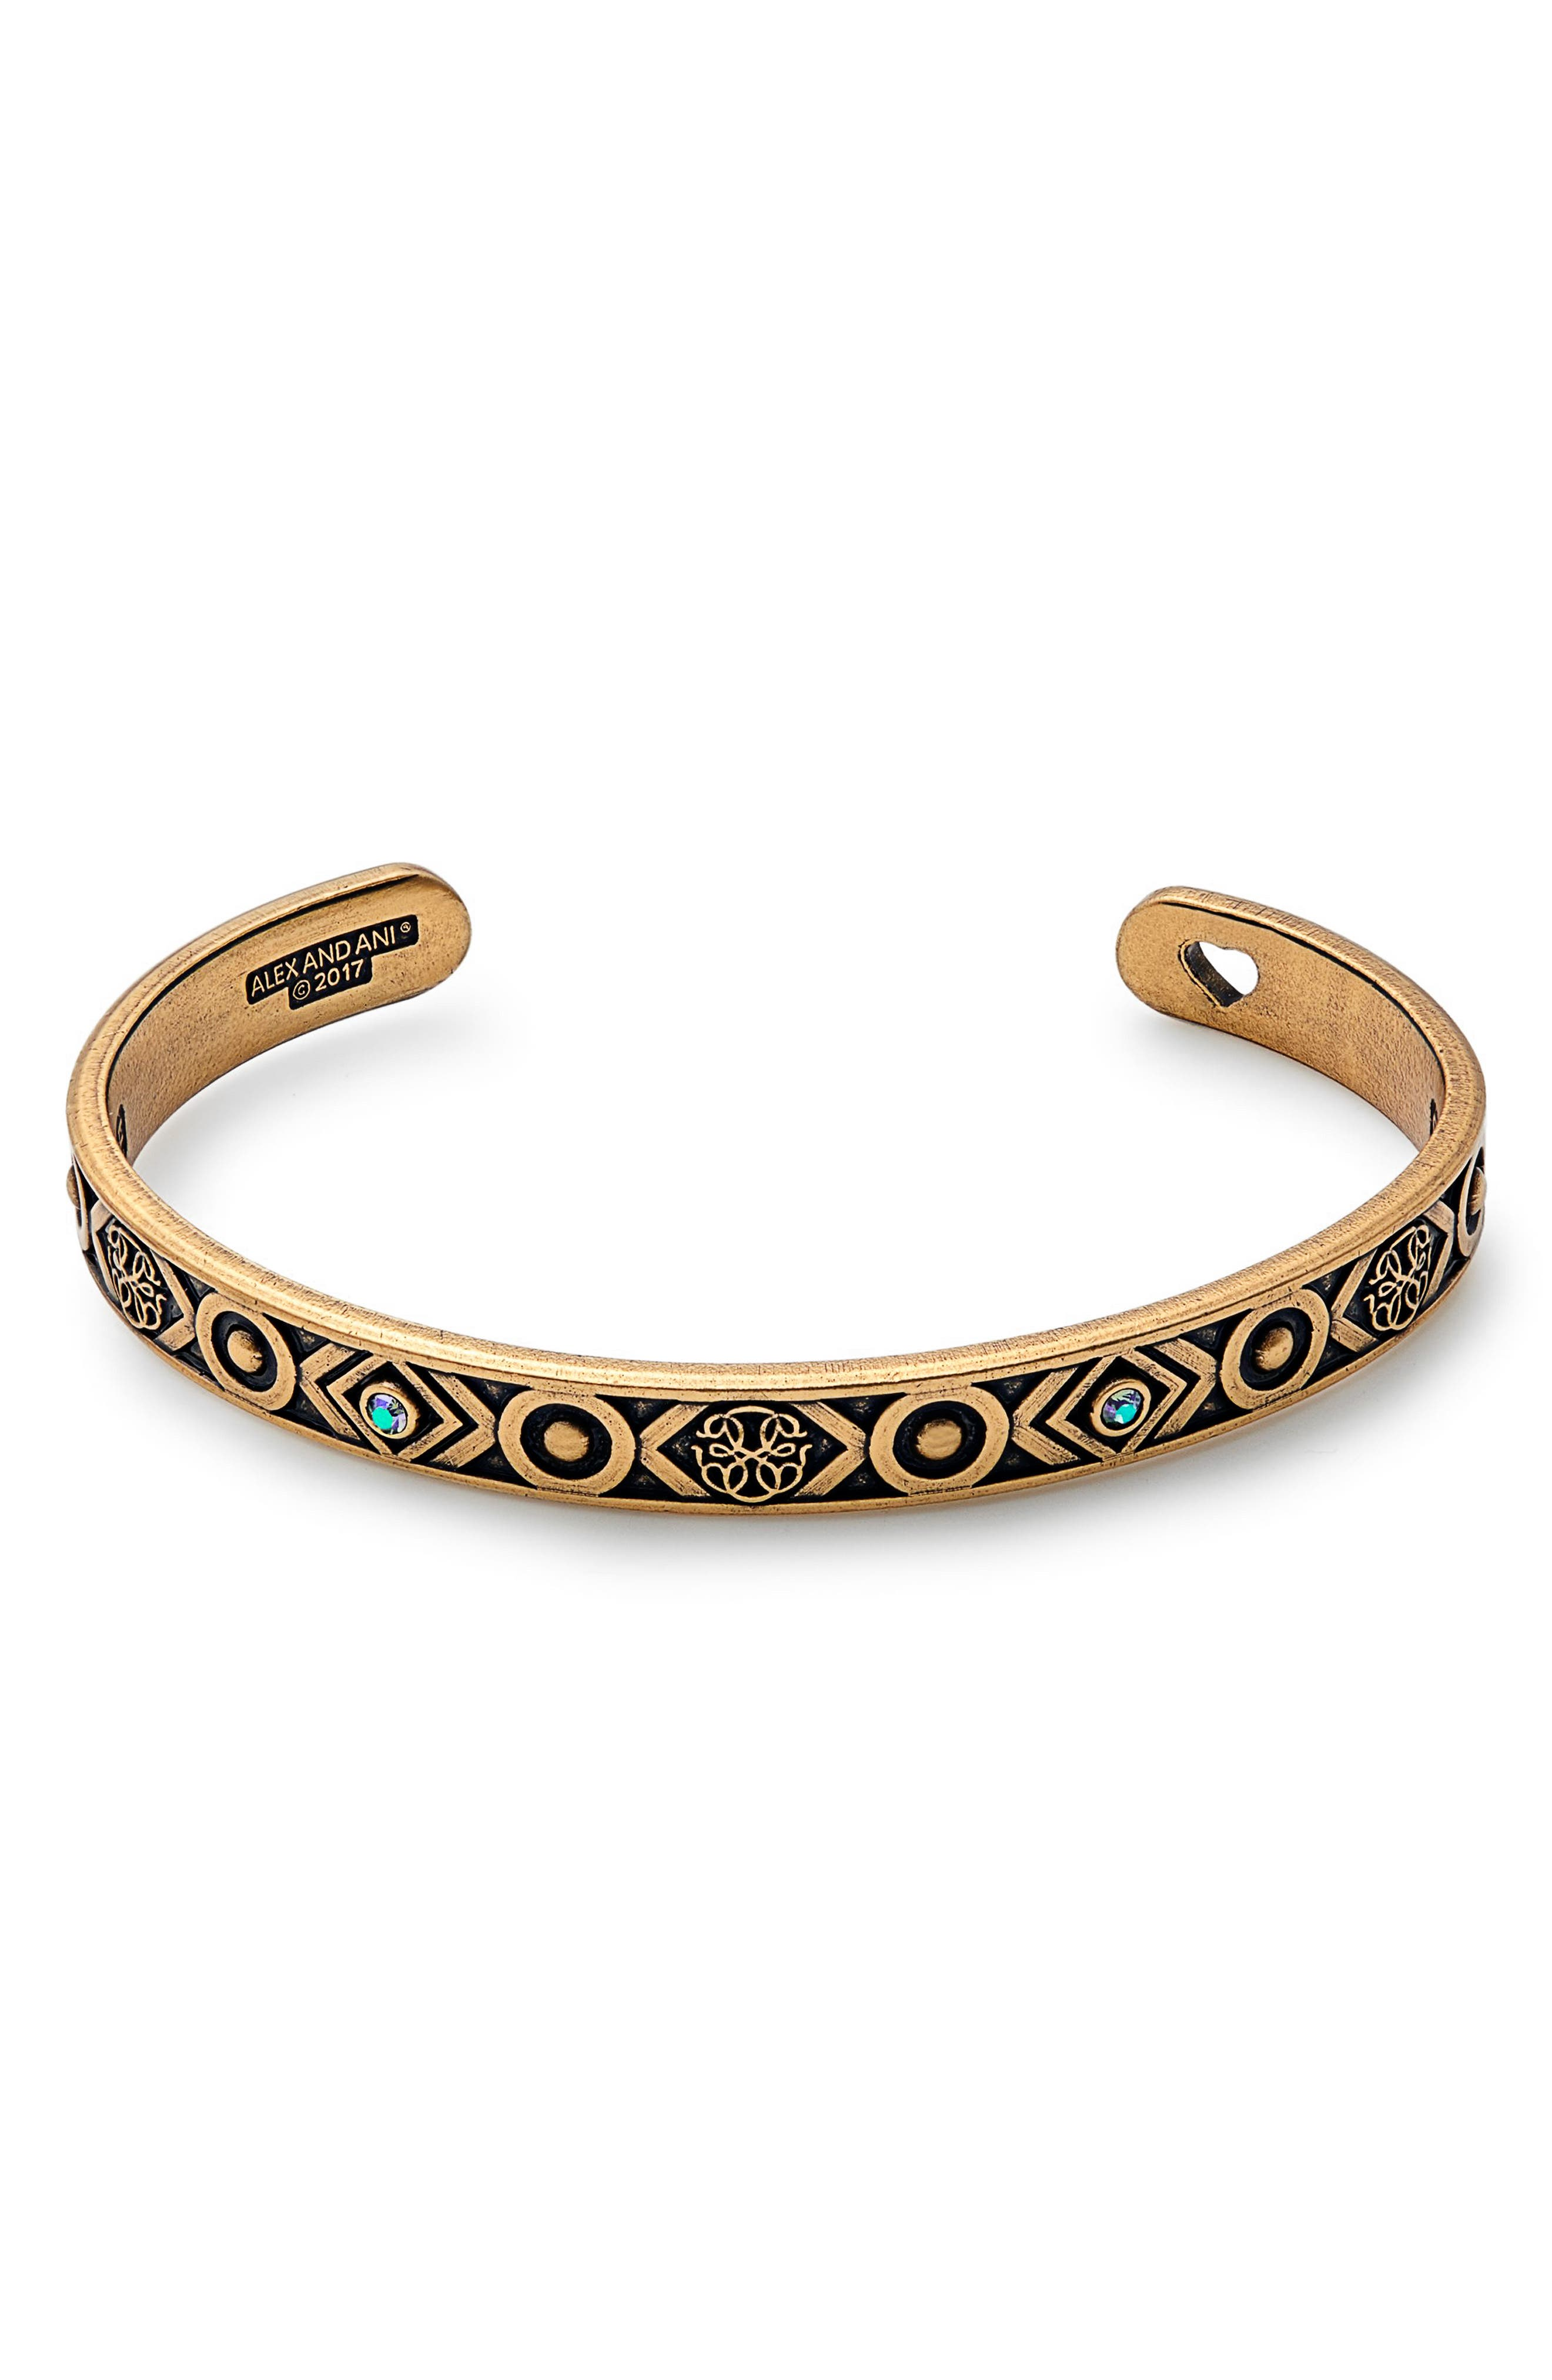 Path of Life Cuff,                         Main,                         color, Gold